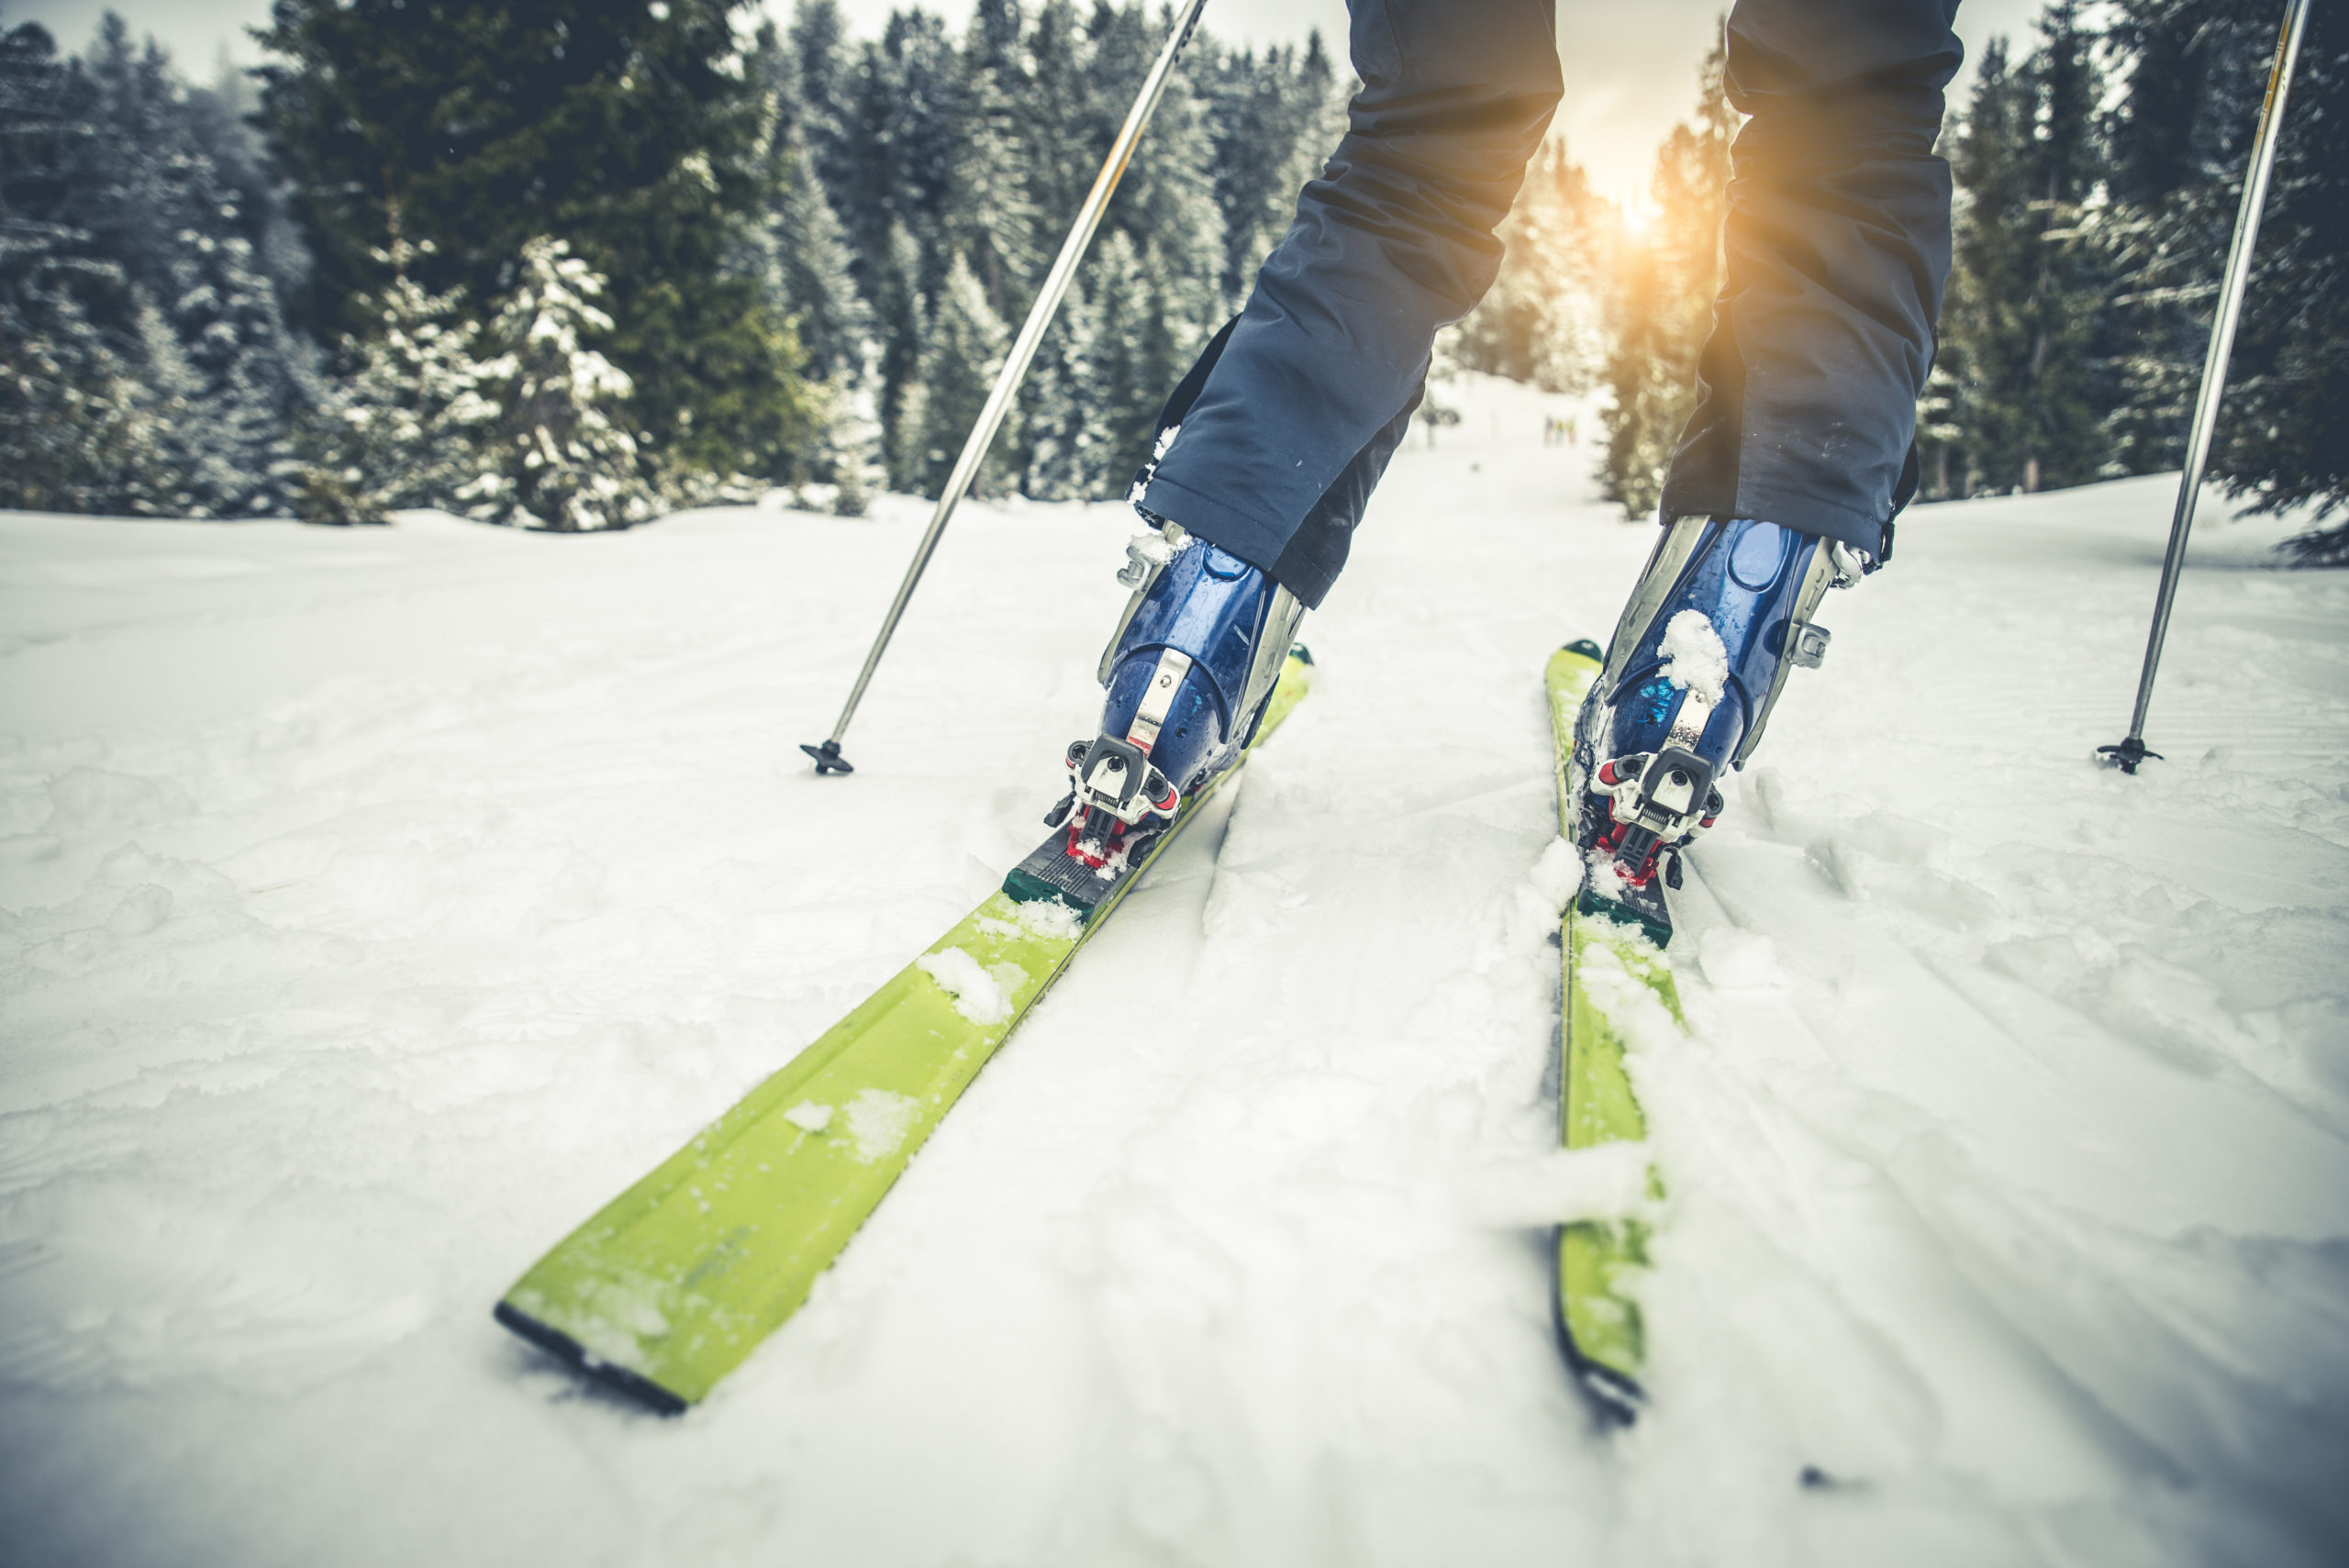 FREE Season Passes to Stevens Pass for 5th Graders